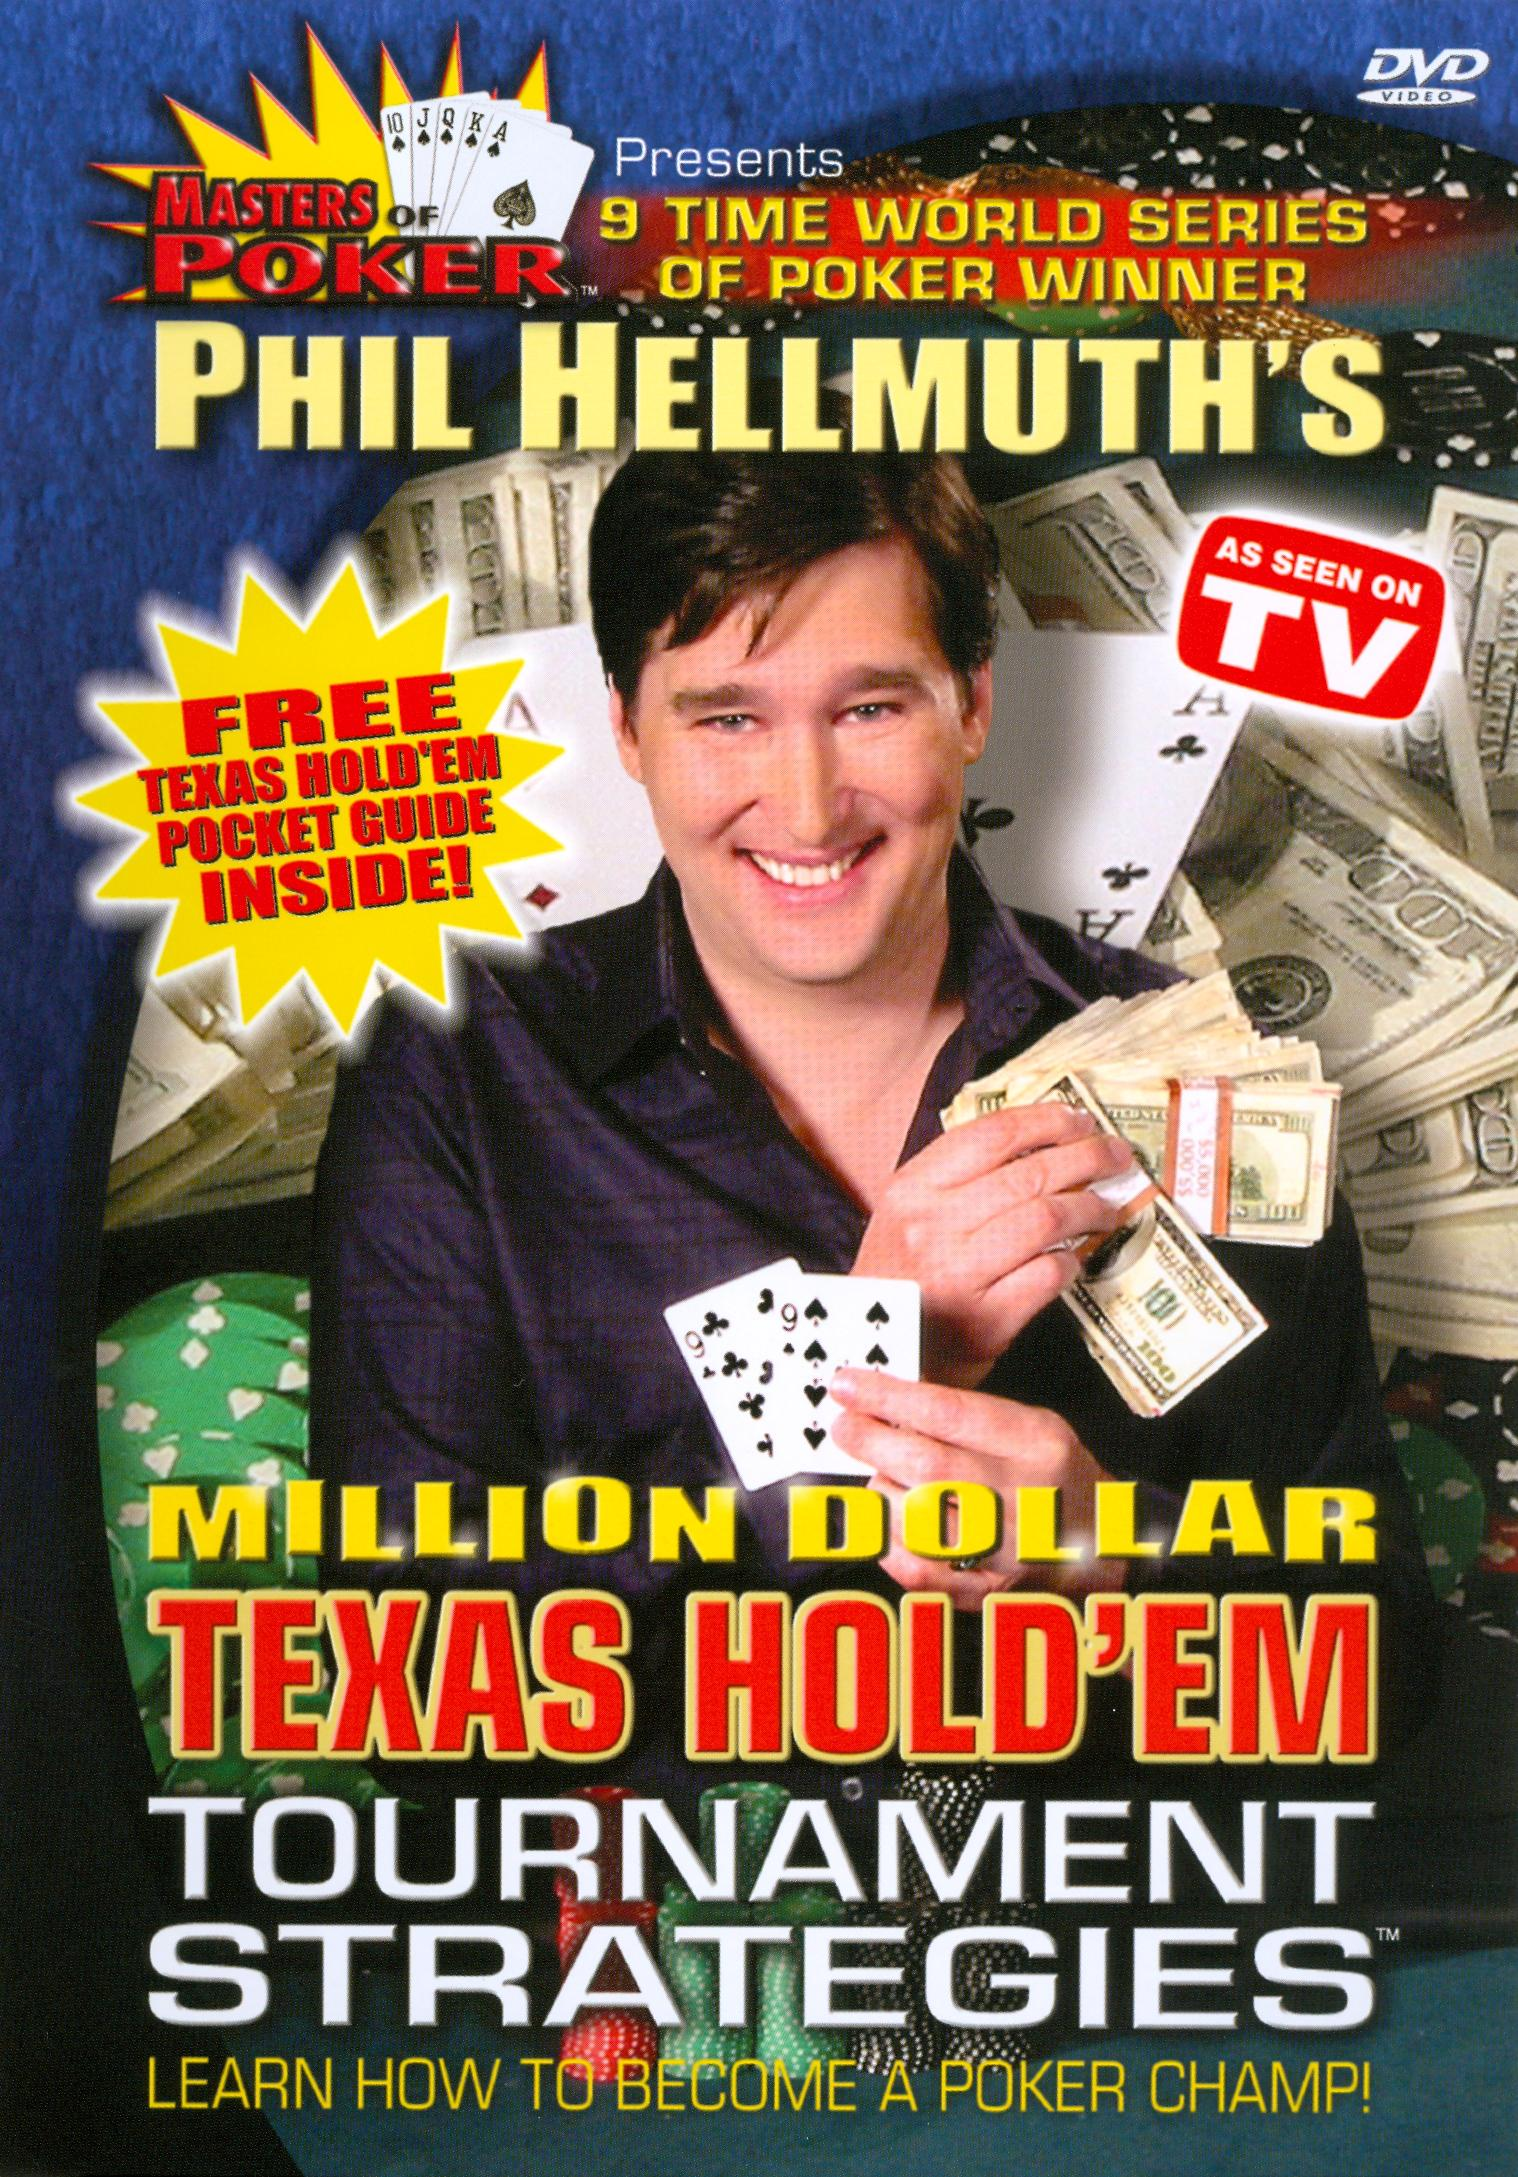 Masters of Poker: Phil Hellmuth's Million Dollar Texas Hold 'Em Tournament Strategies